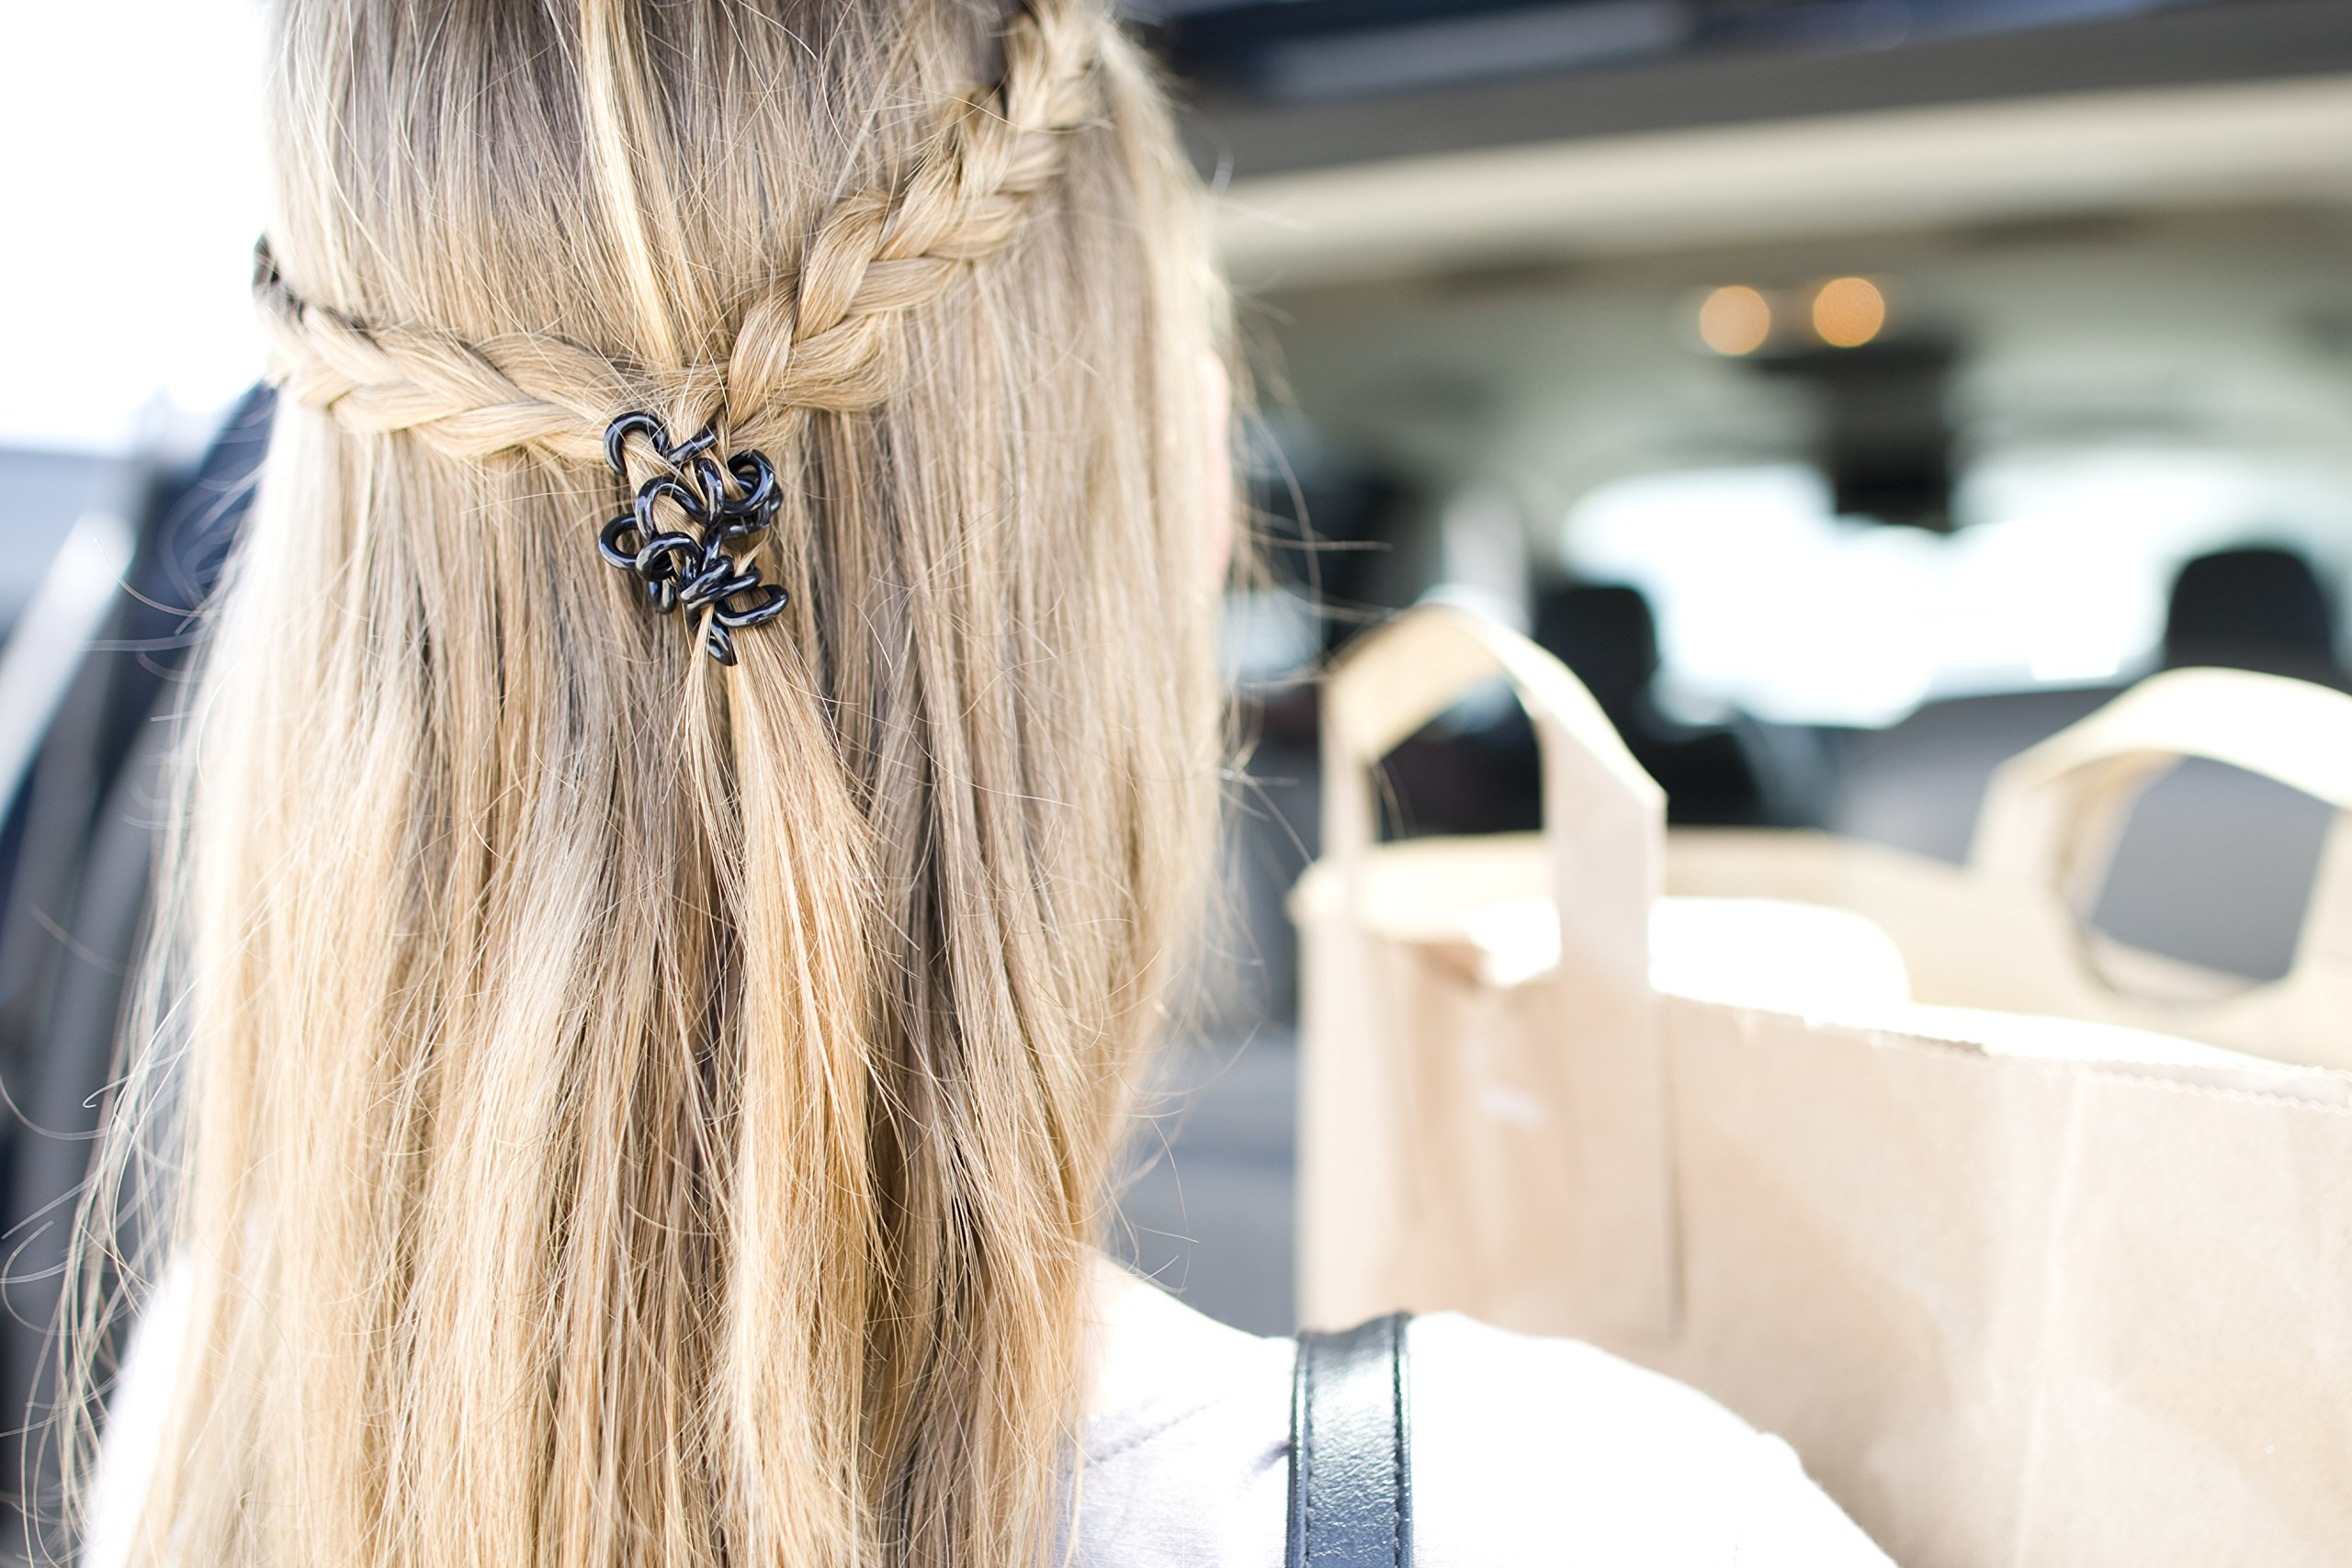 Painless PATENTED OOO Hair Ties. Ponytail holder spiral coil no traceless rubber bands. Best kids girls woman accessory all types of hair. Exercise, workouts & everyday (Metallics) by OOO (Image #7)